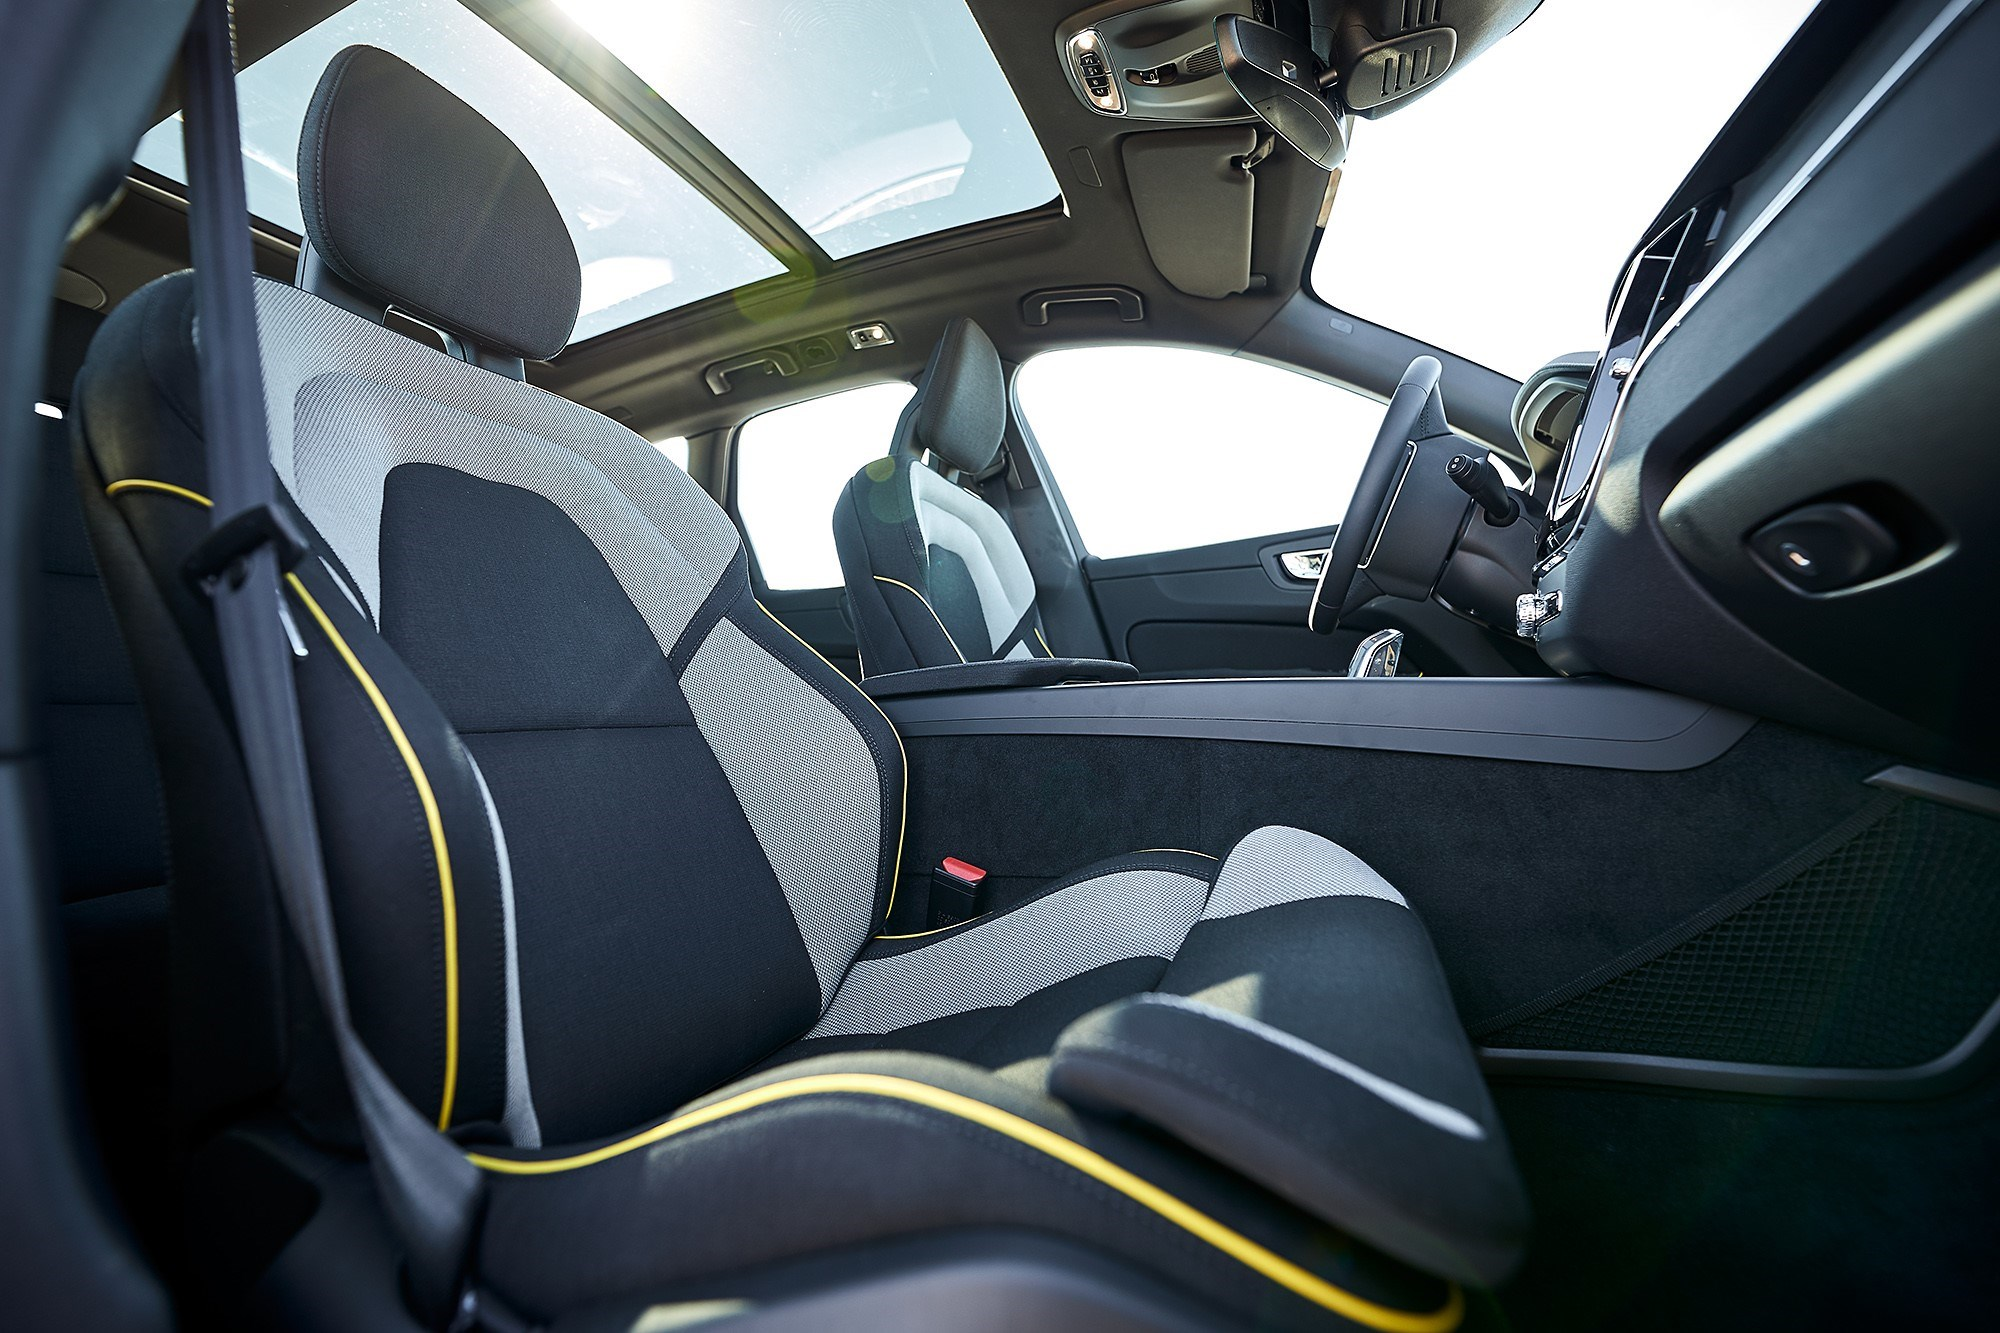 By 2025 It Aims For At Least 25 Of The Plastics Used In Every Newly Launched Volvo Car To Be Made From Recycled Material